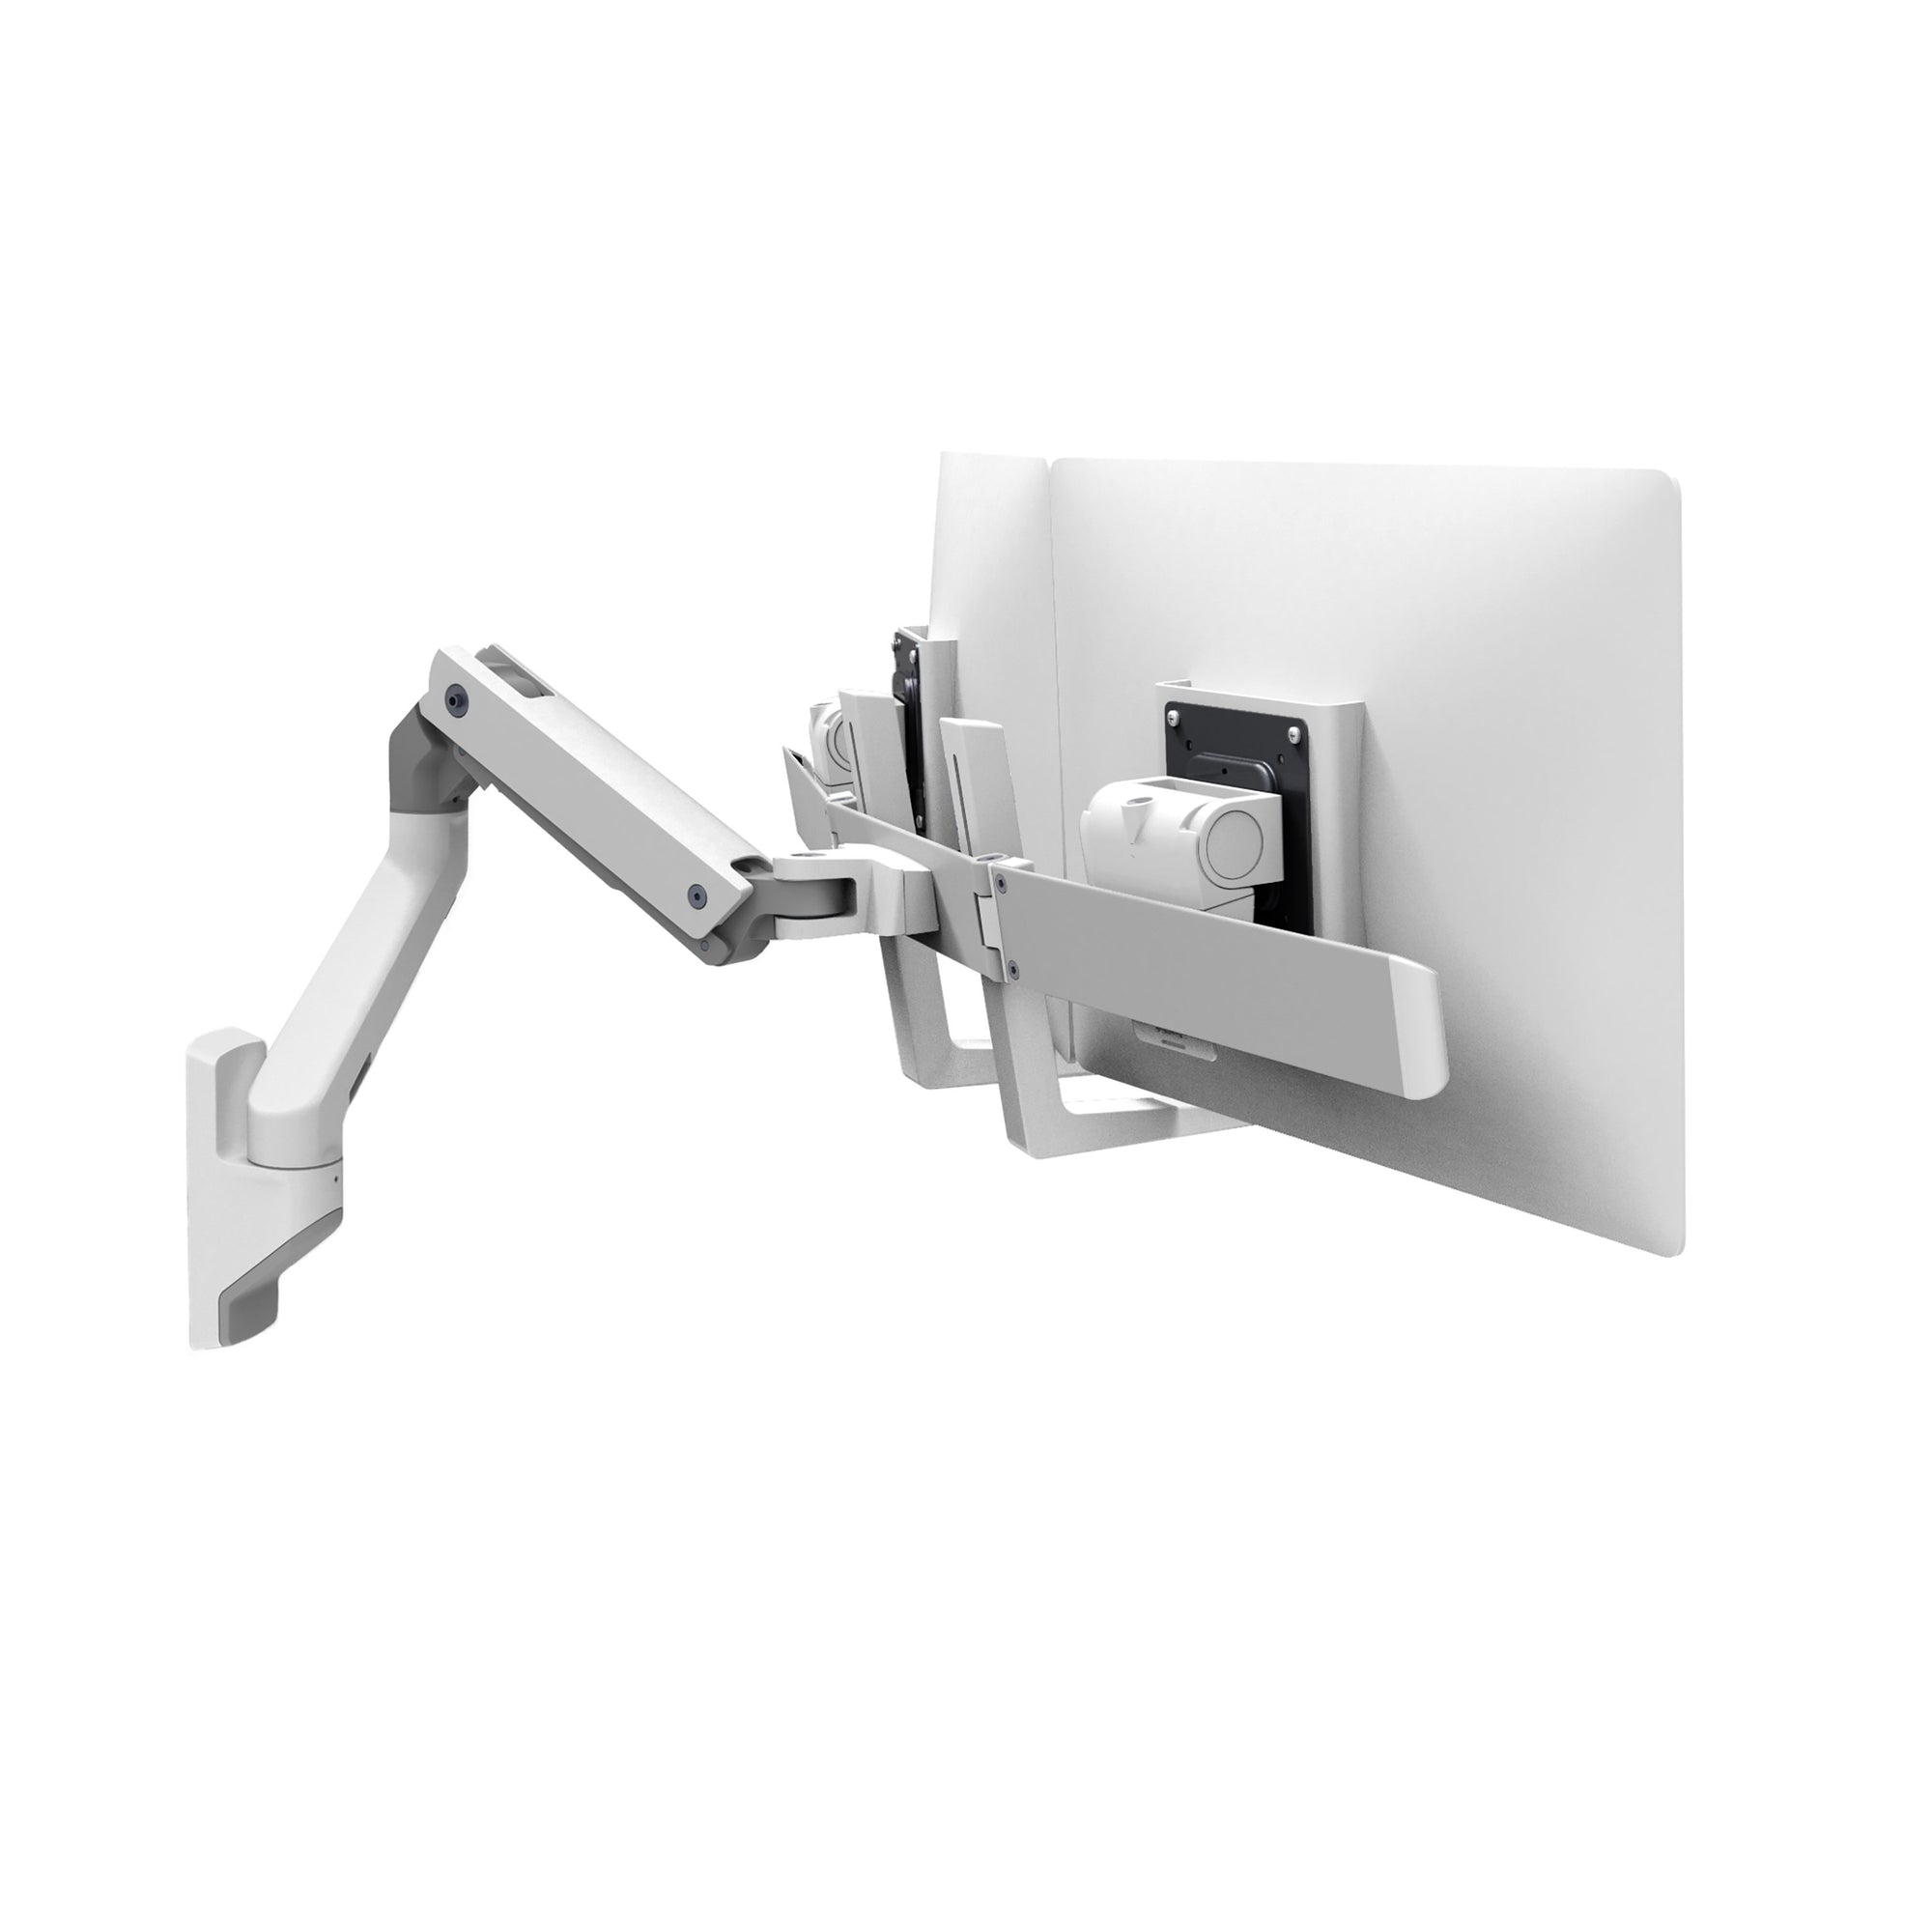 Ergotron HX Wall Dual Monitor Arm 45-479